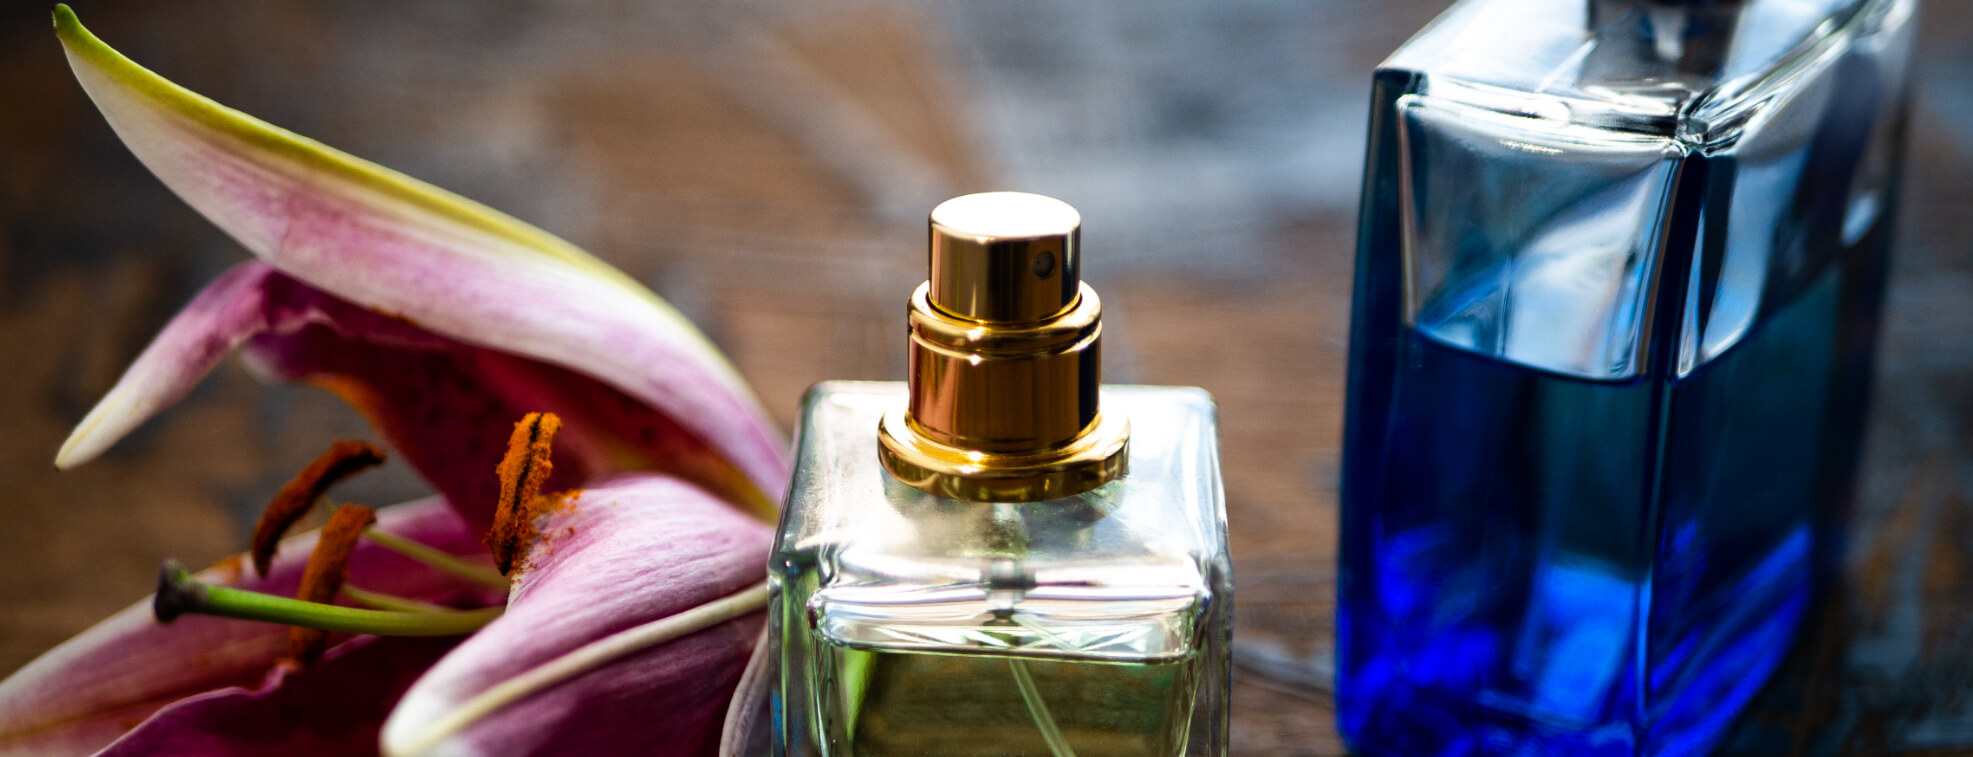 Spice up your Valentine's Day with a perfume